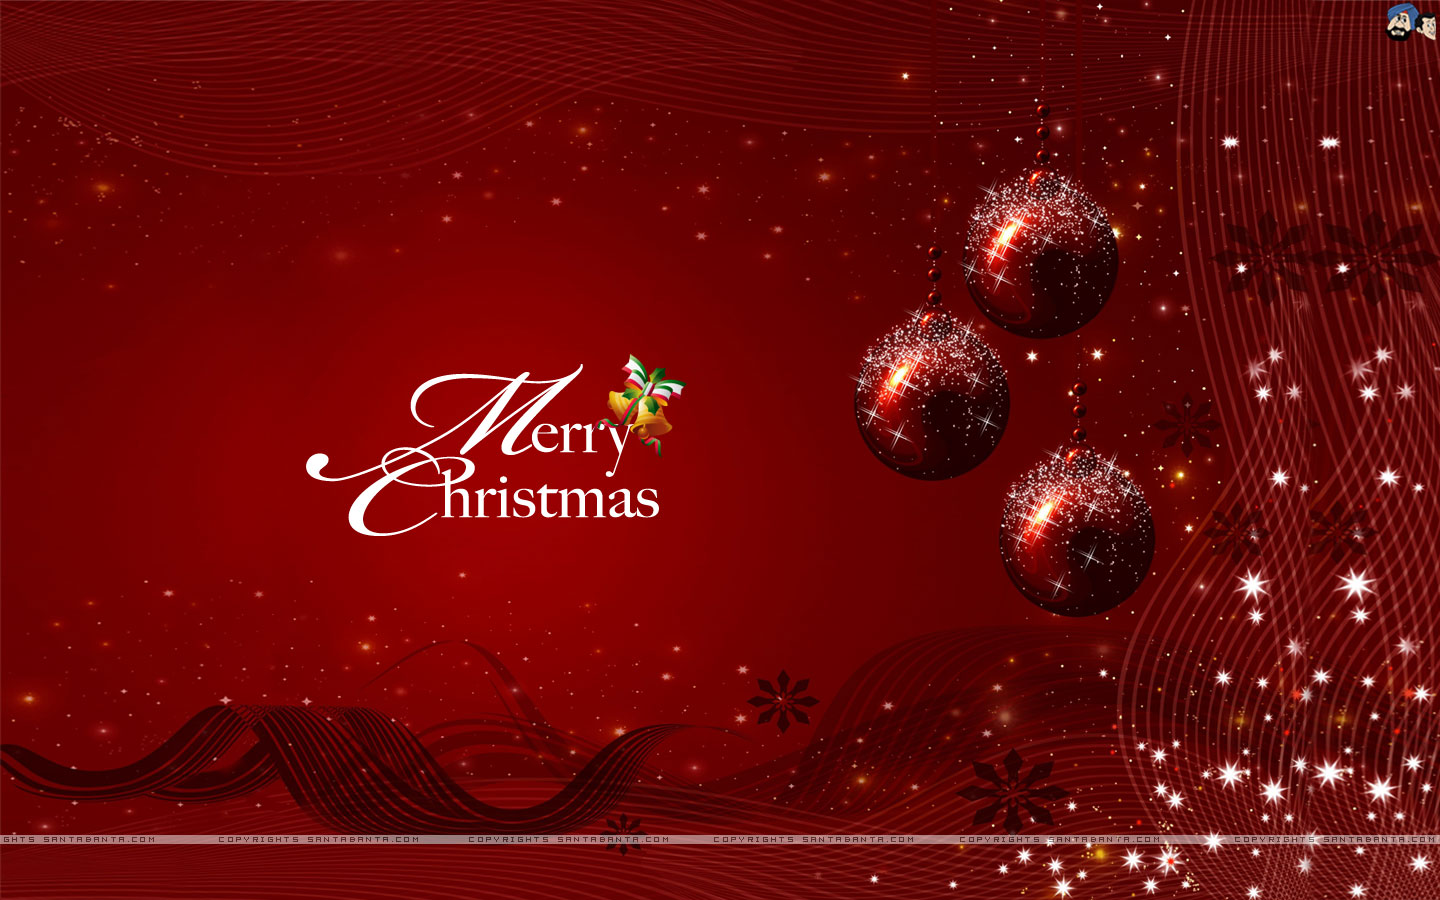 happy christmas wallpapers latestsmsin 1440x900